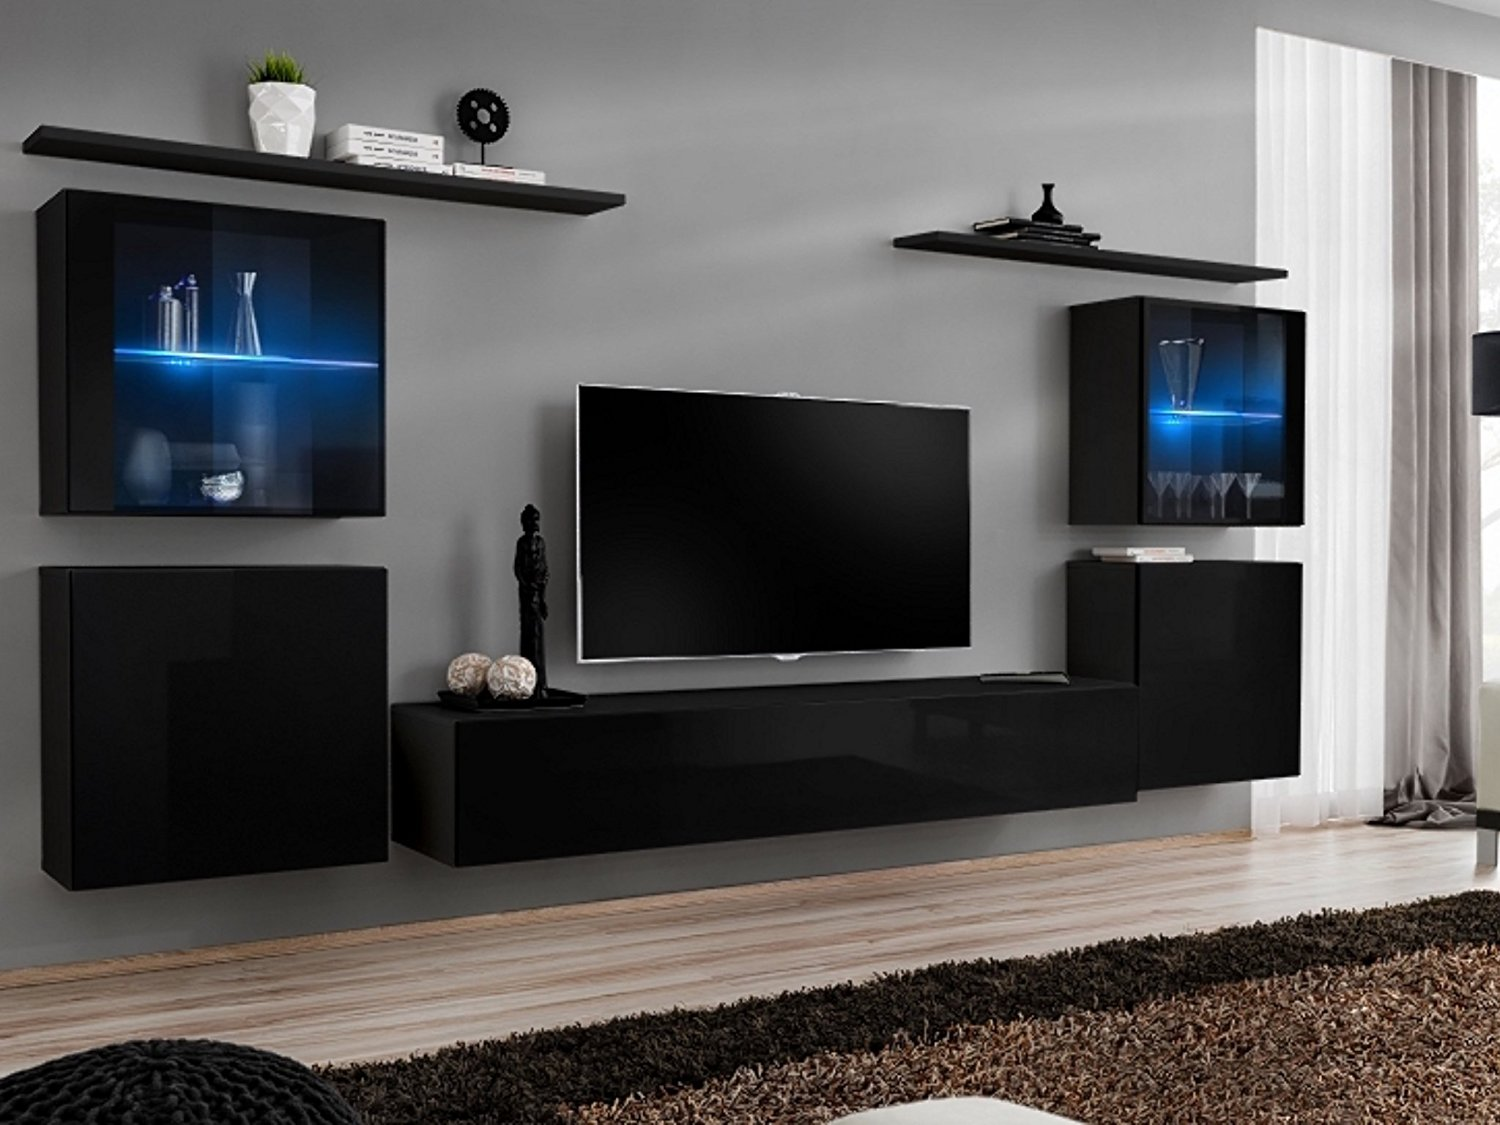 "SHIFT XIV - Seattle collection - Set of 5 modern cabinets Matte Body & High Gloss Fronts - Multicolor remote controlled LED lights - Home entertainment center TV cabinet for up to 80"" TVs (Black)"